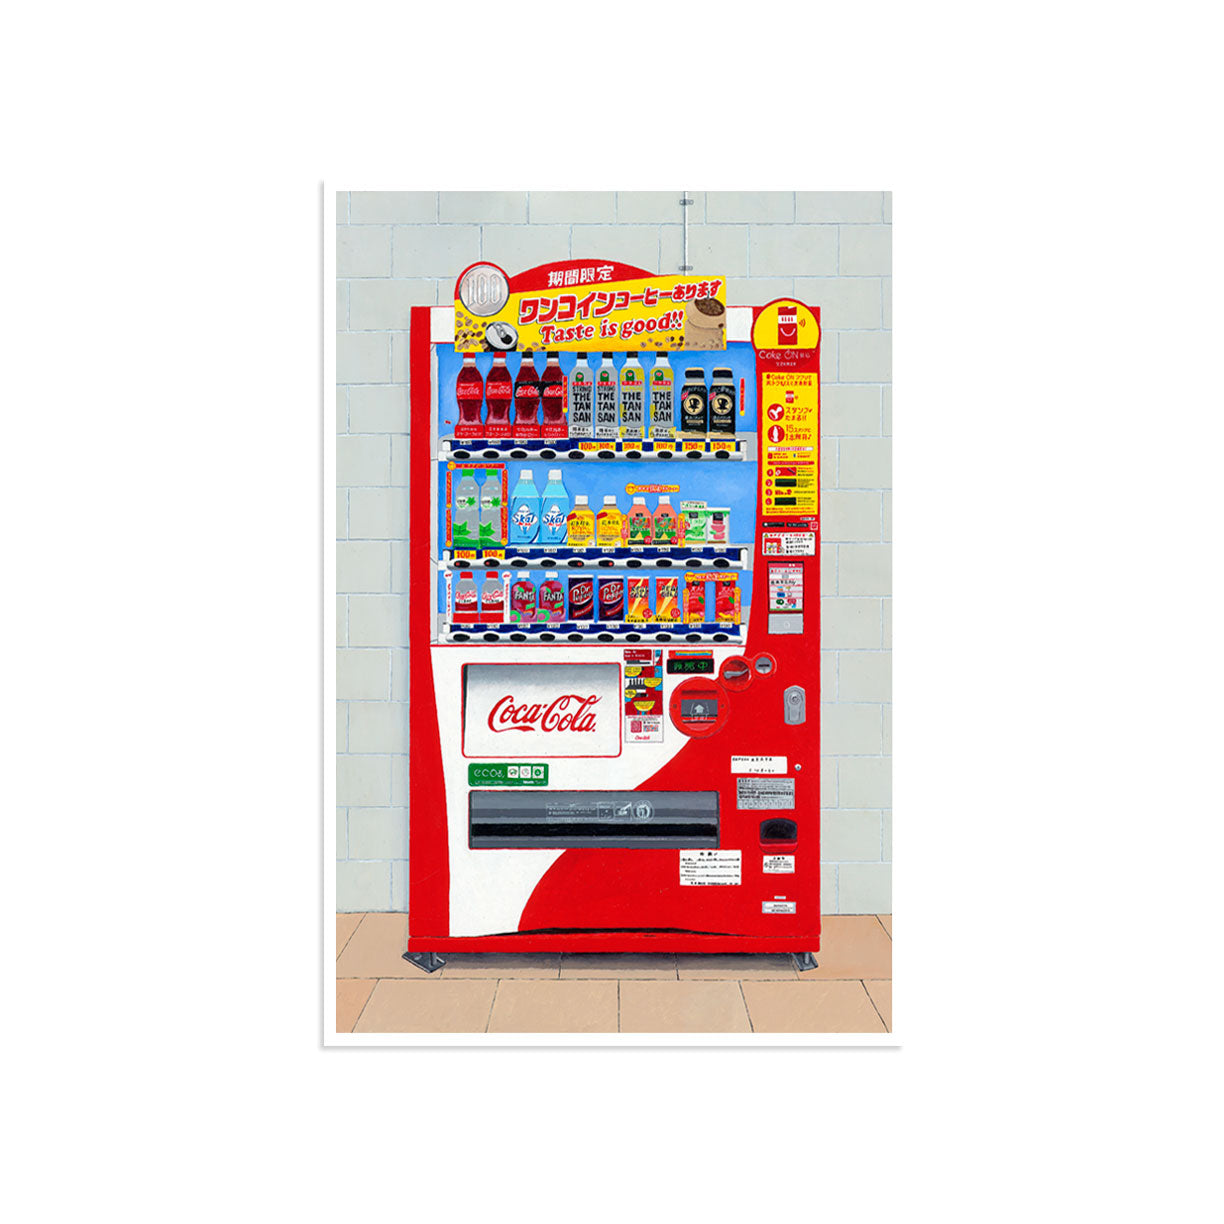 Japanese Vending Machine No. 4 by Horace Panter | Print | Poster Child Prints